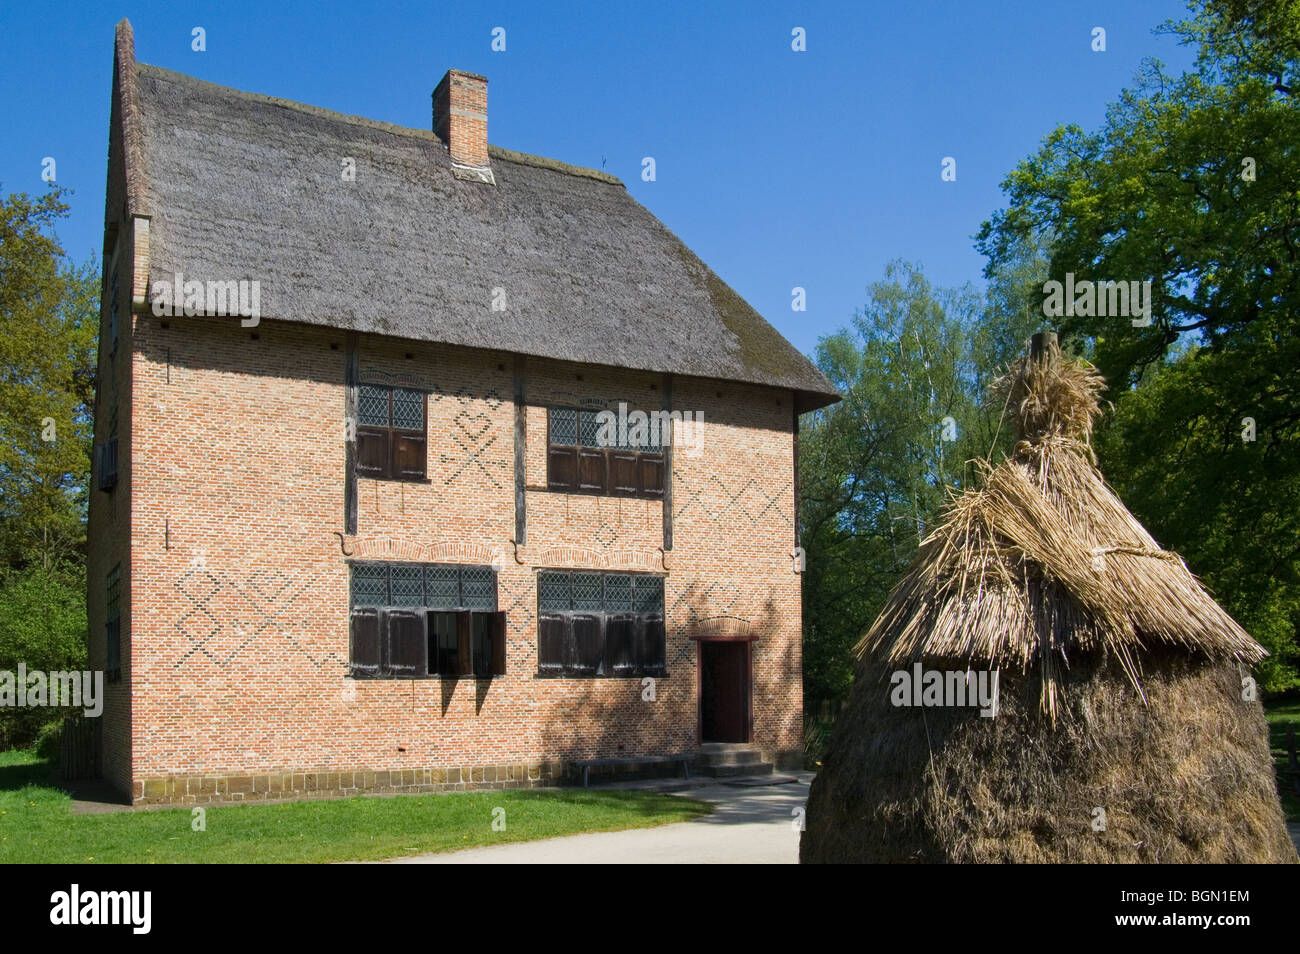 Haystack and traditional brick house in the open air museum Bokrijk, Belgium - Stock Image